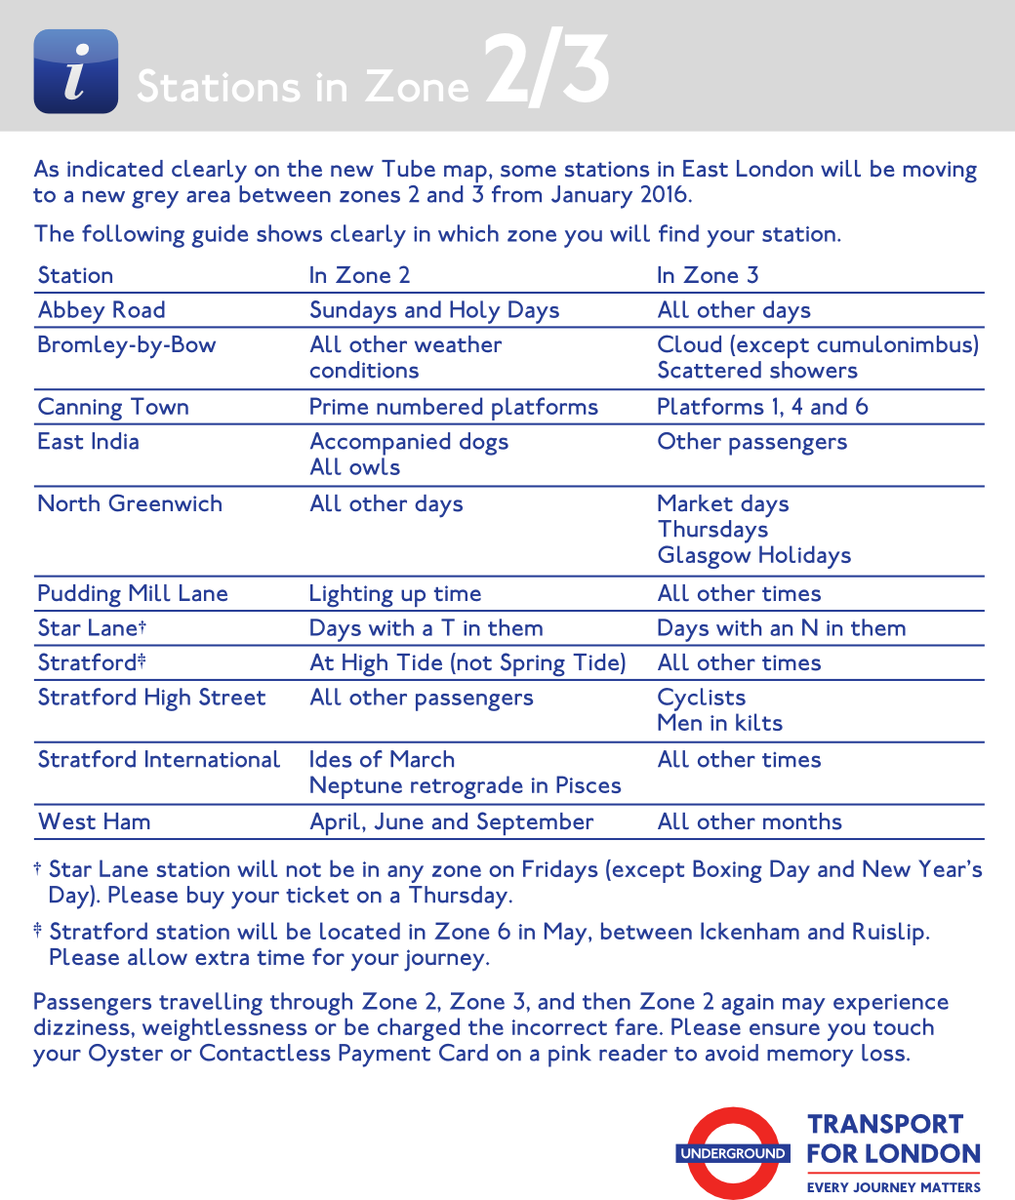 a quick guide to stations in zones 2/3 in the new year. https://t.co/6R2UmaurA4